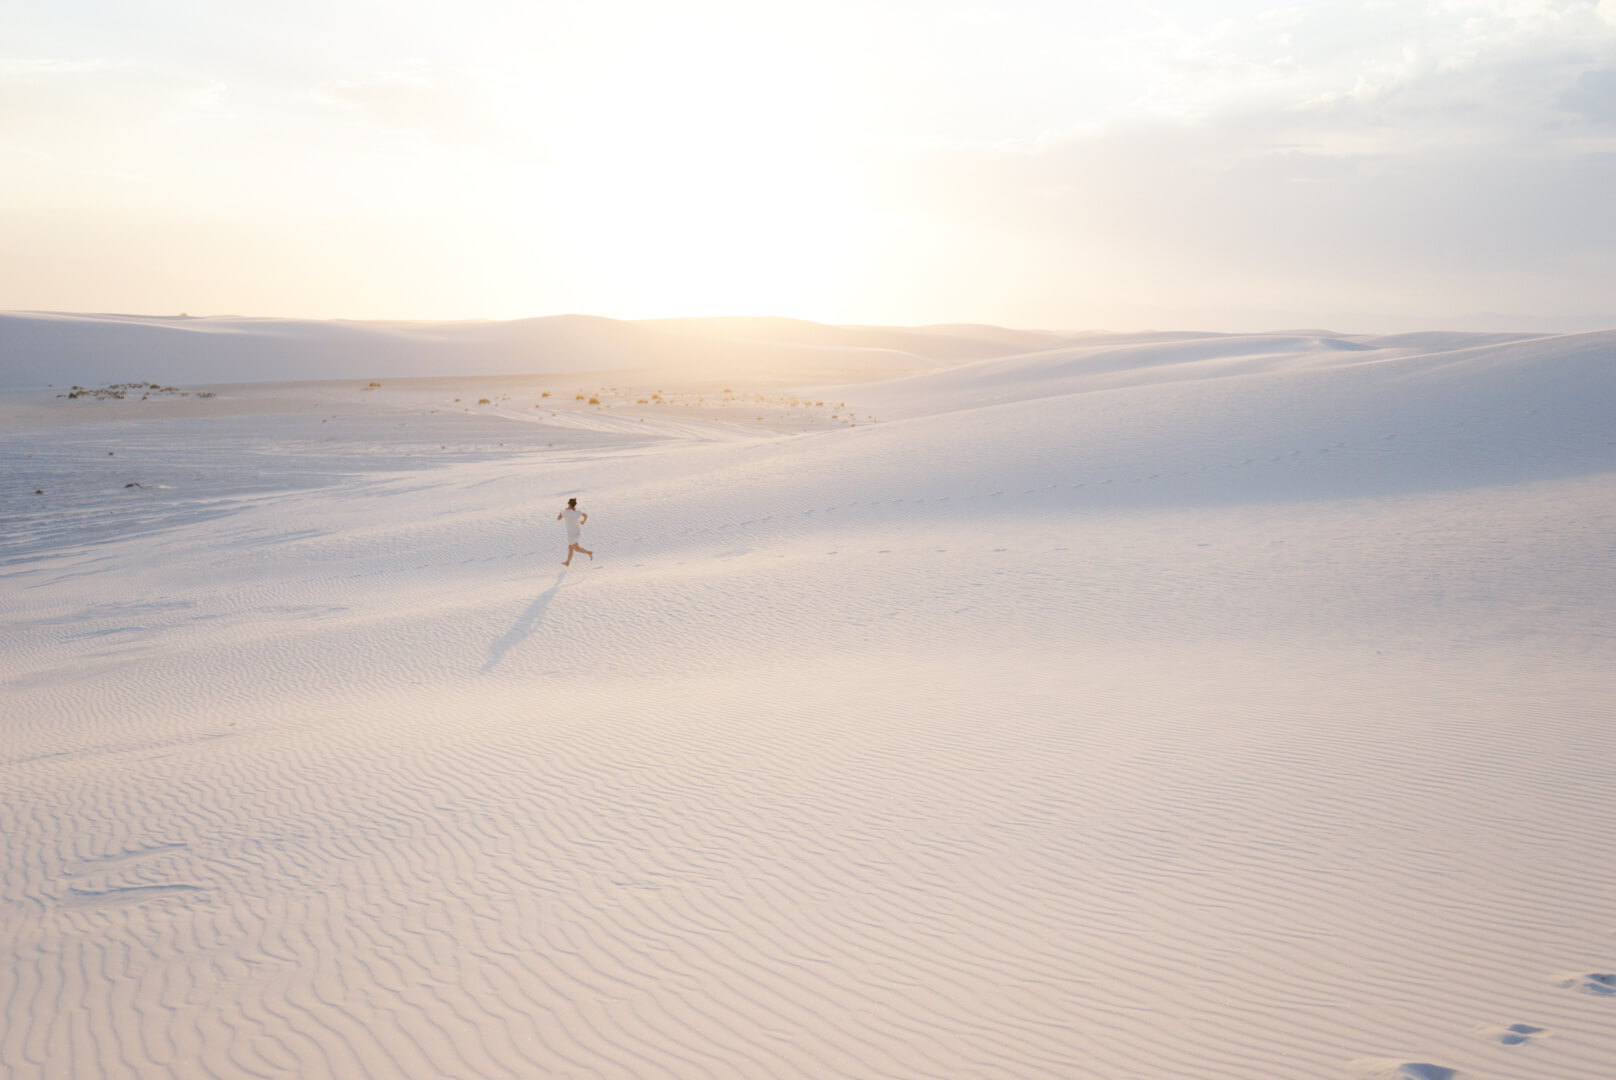 Photo of woman running across sand in desert setting captured using tips on how to take better iPhone photos